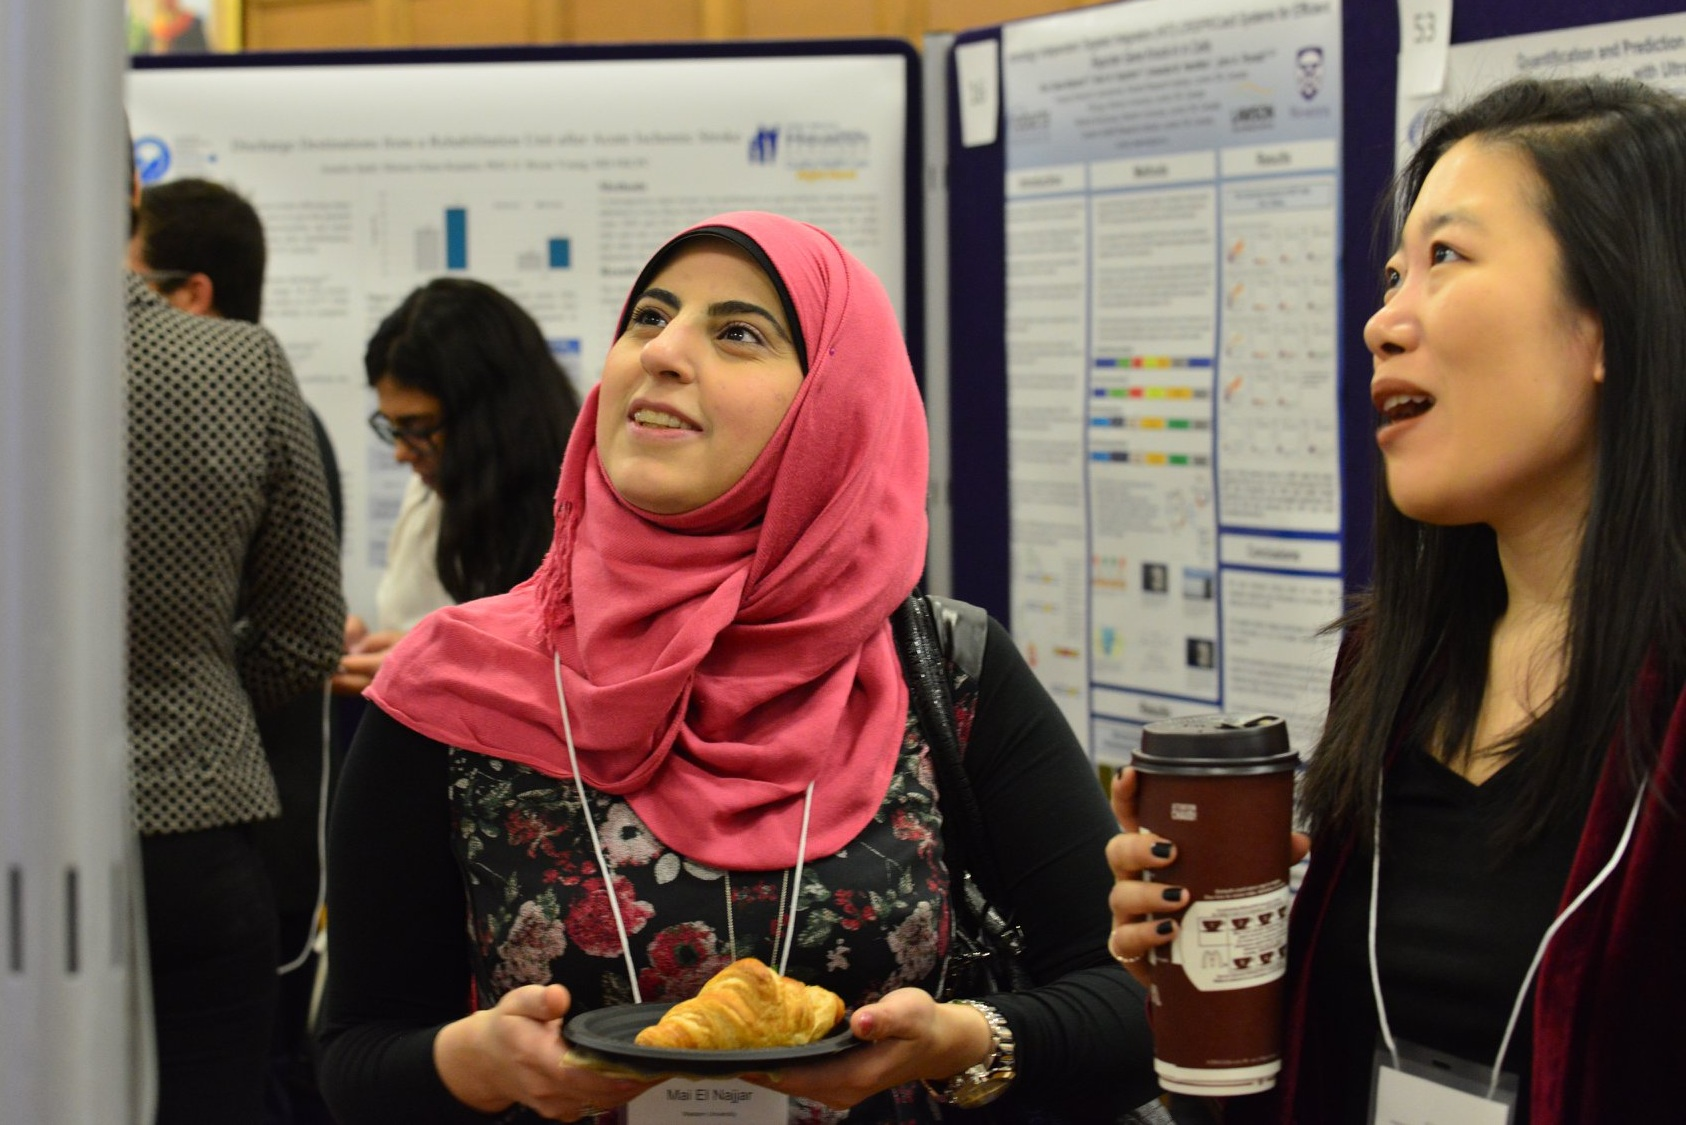 Conference - Learn about our conference which features an industry and graduate program expo, an undergraduate research poster competition, and inspiring keynote speakers.